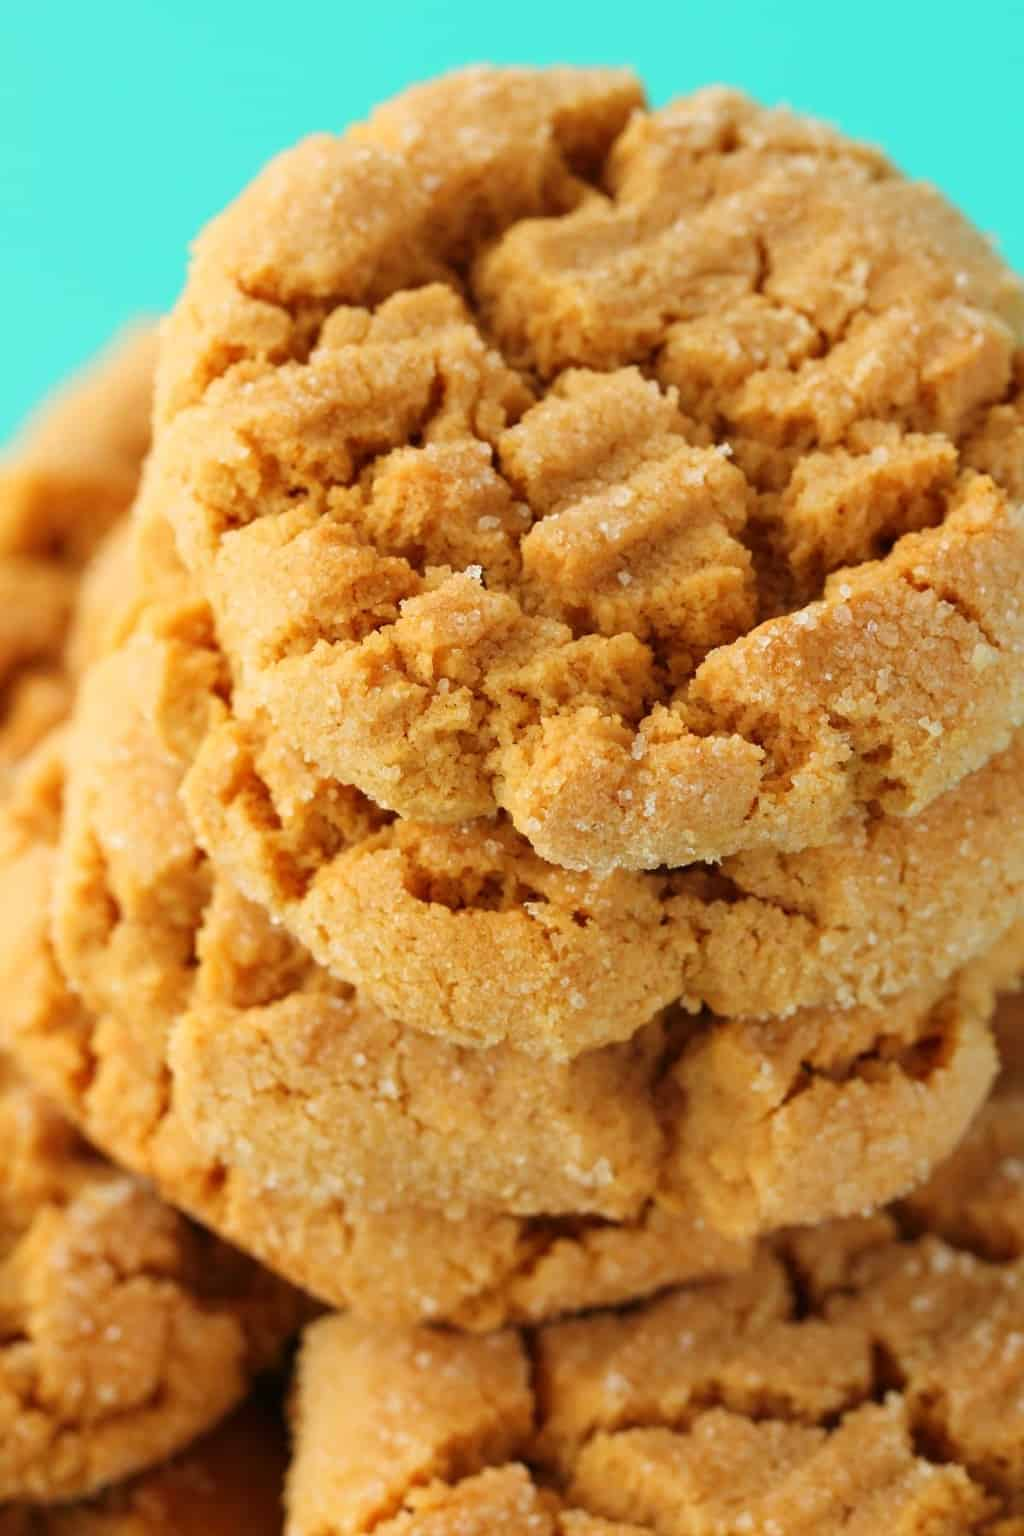 A stack of vegan peanut butter cookies.